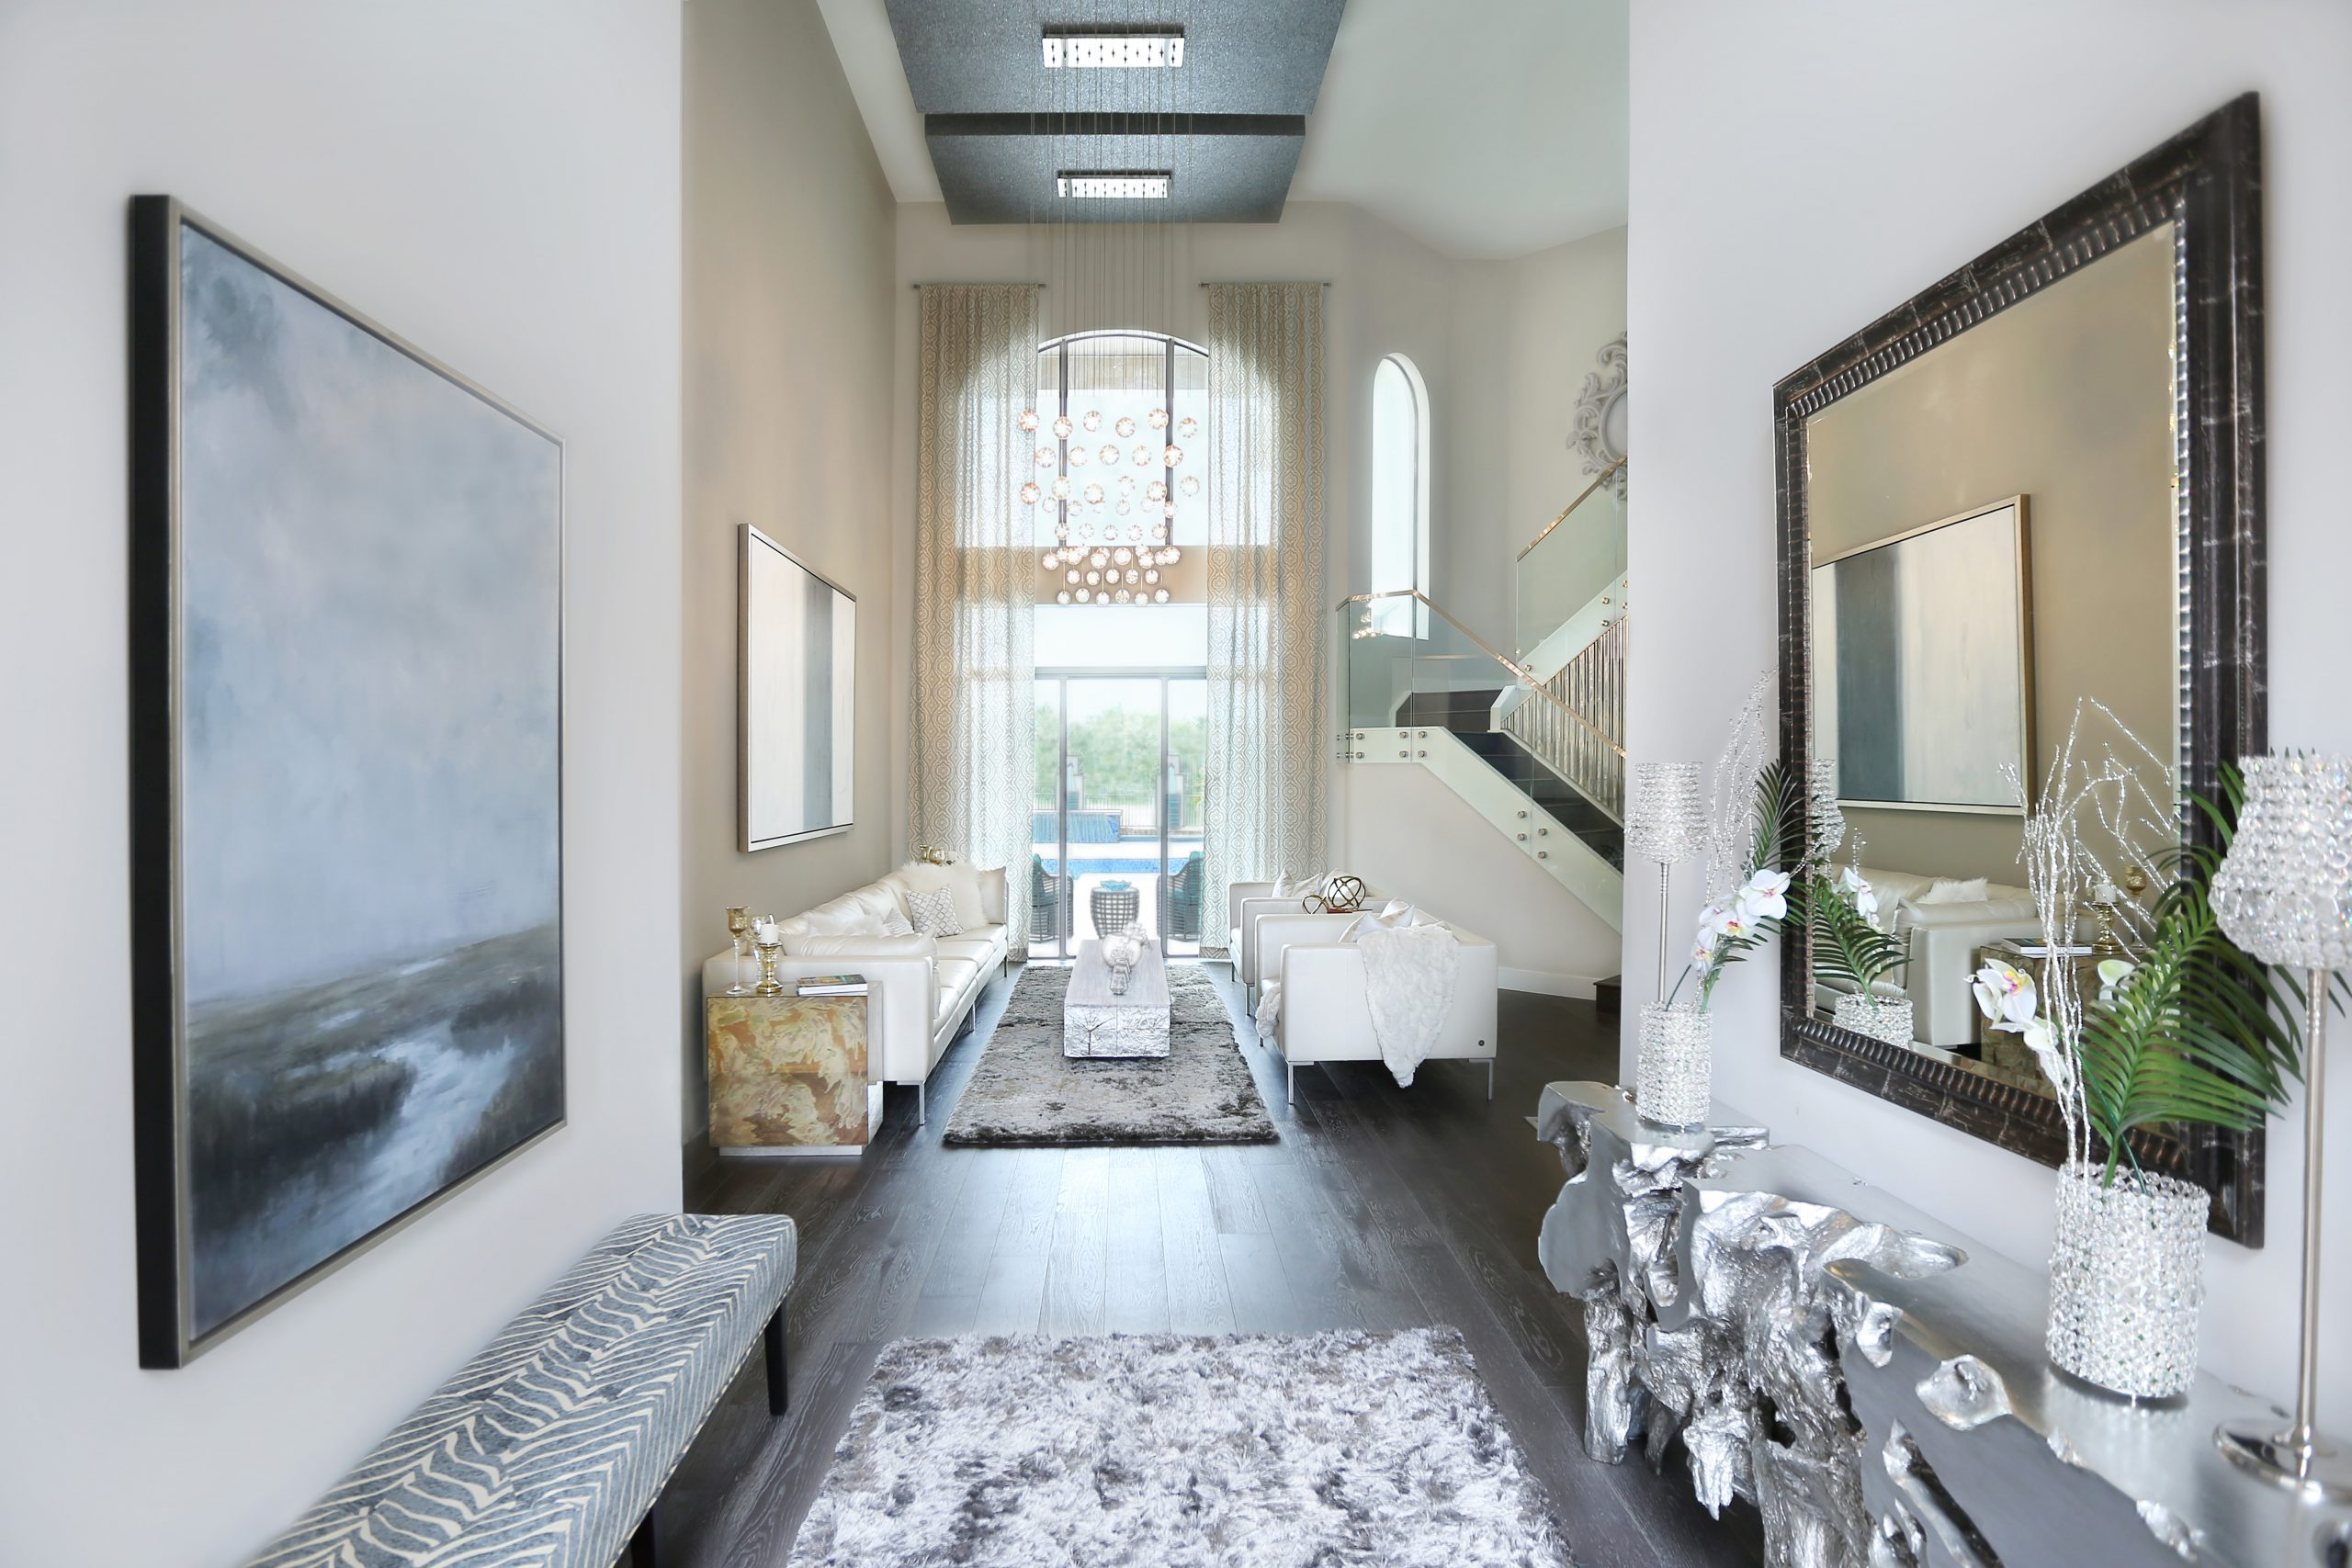 Boutique Hotel at Home